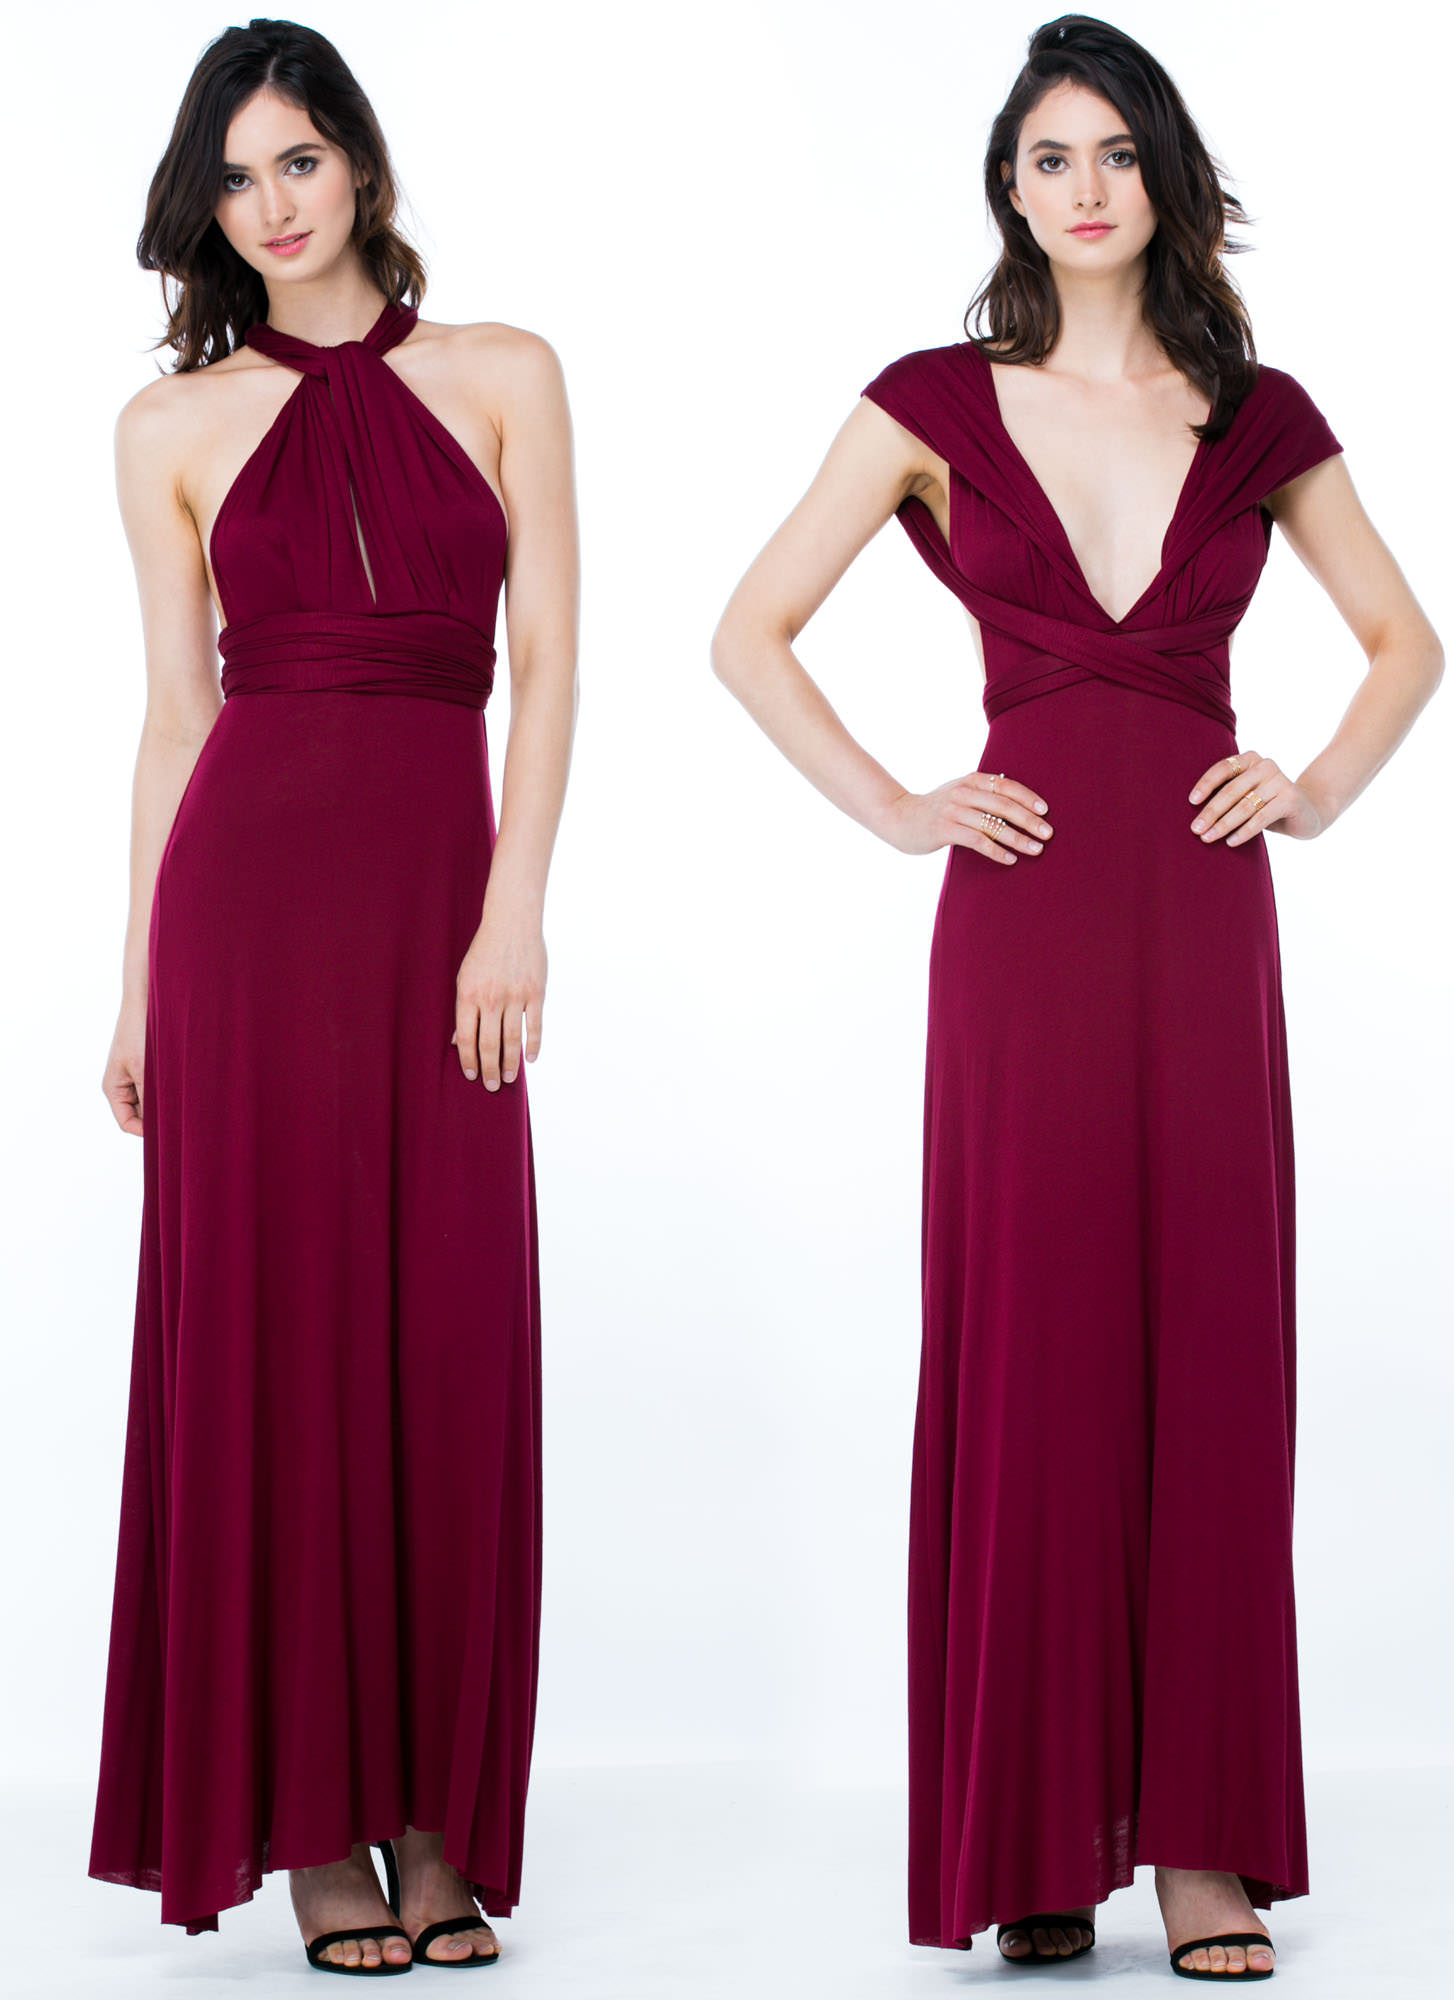 Chic-Shifter Convertible Maxi Dress BURGUNDY